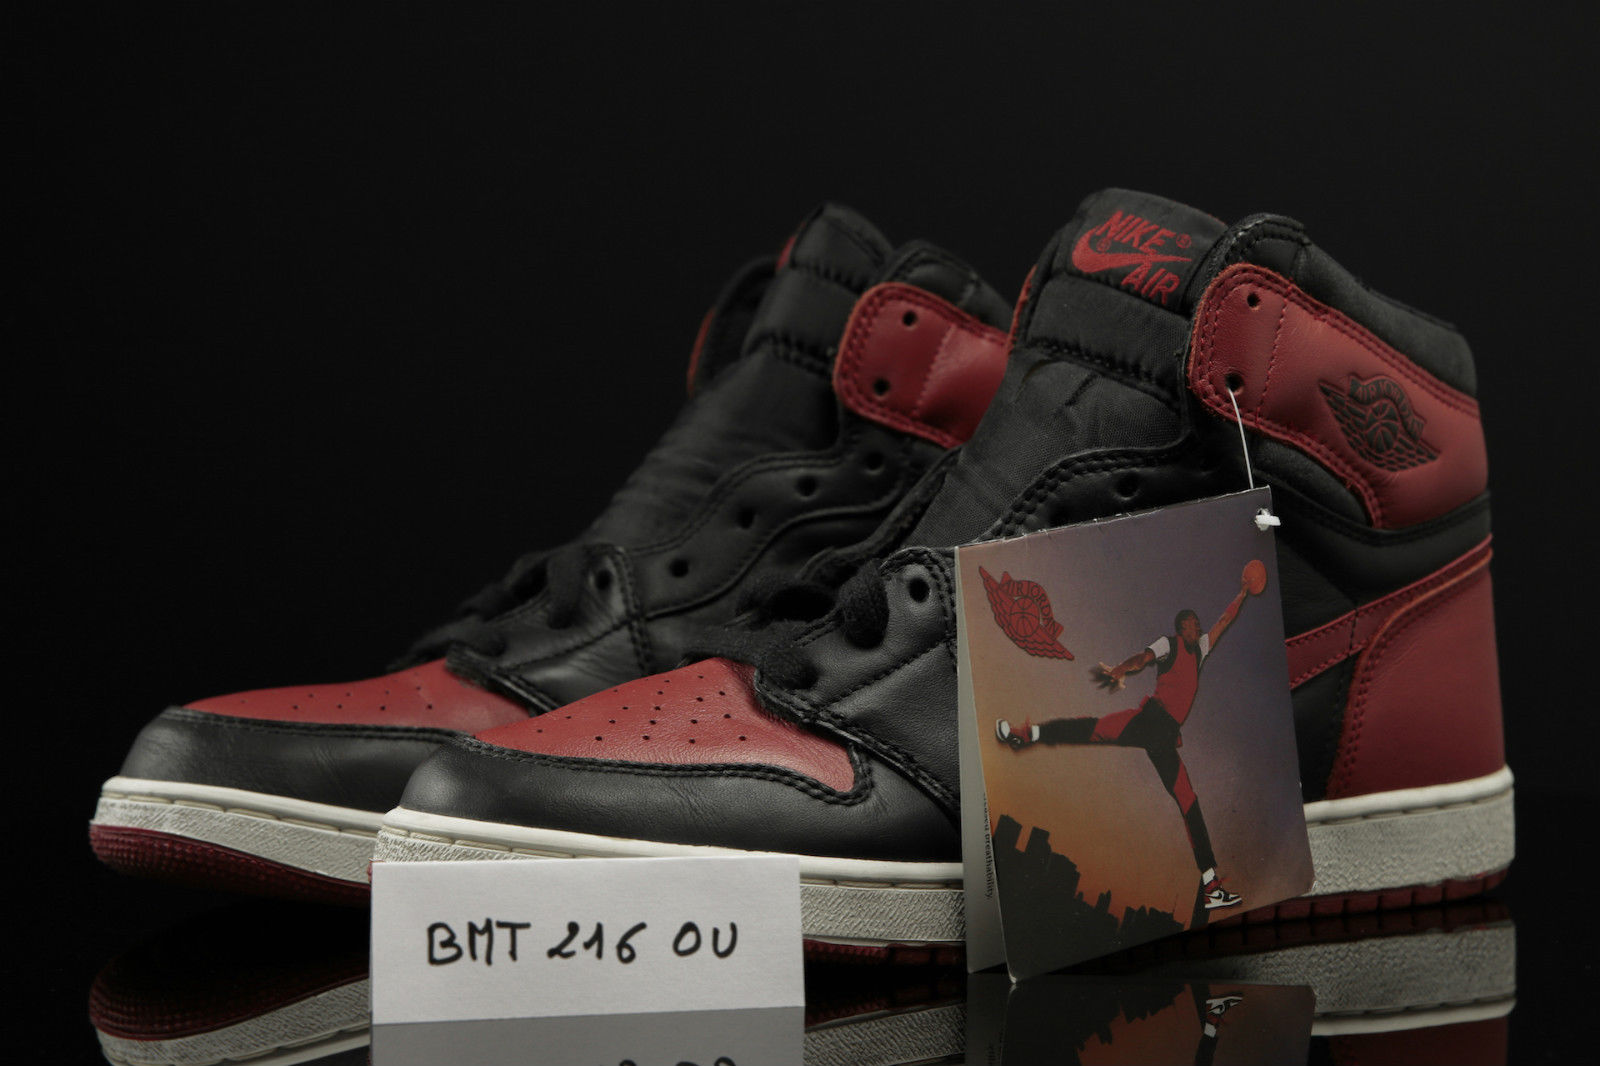 39b8b696249 The 23 Most Rare and Expensive Air Jordans on eBay Right Now